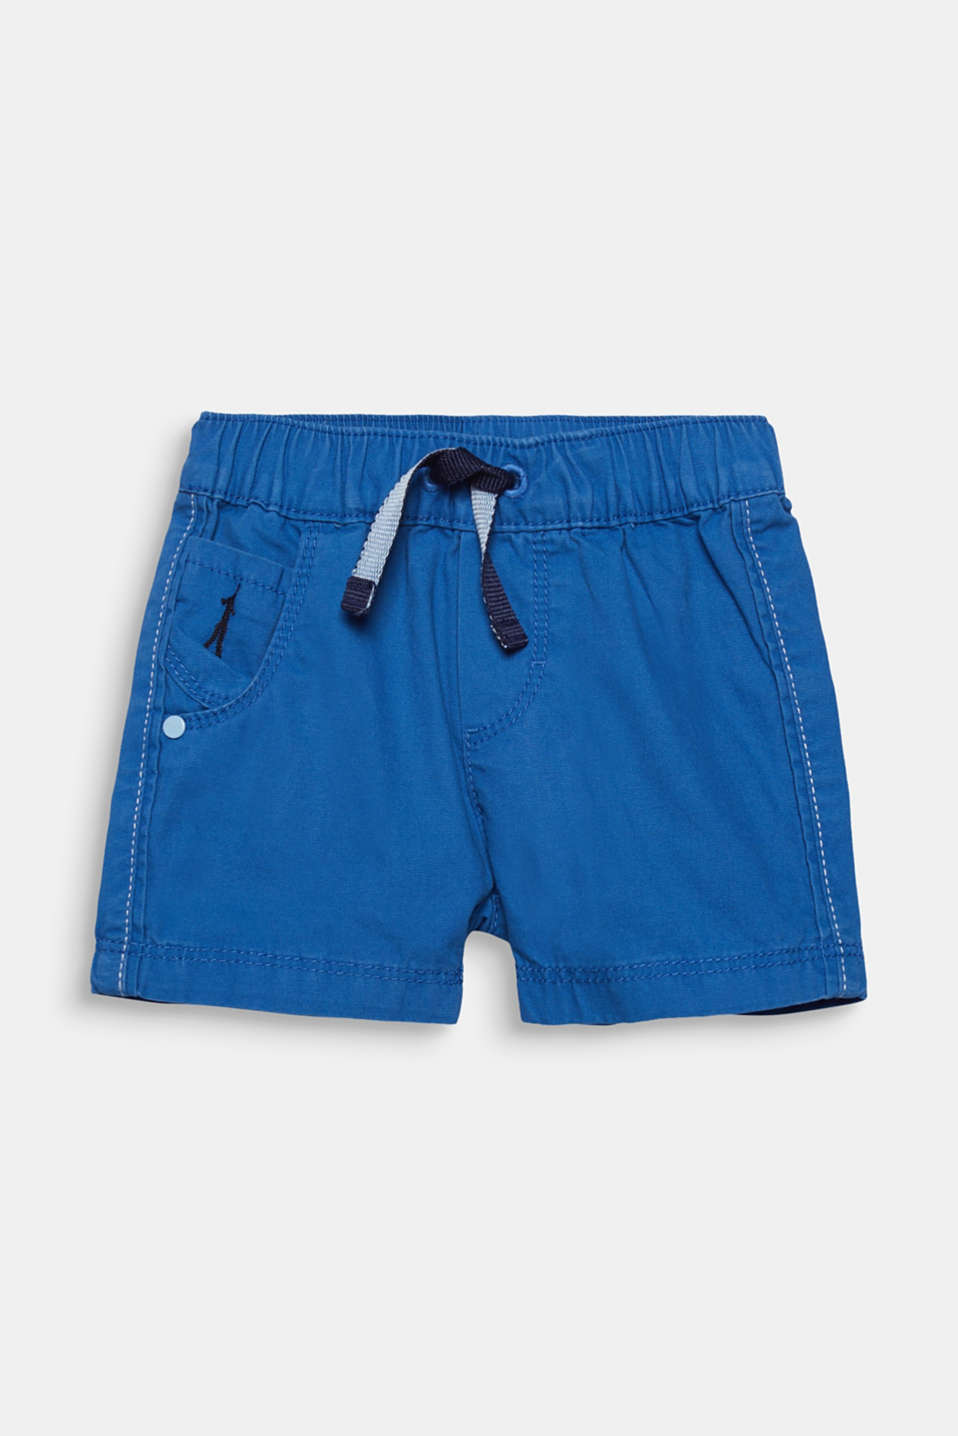 Esprit - Woven shorts in 100% cotton